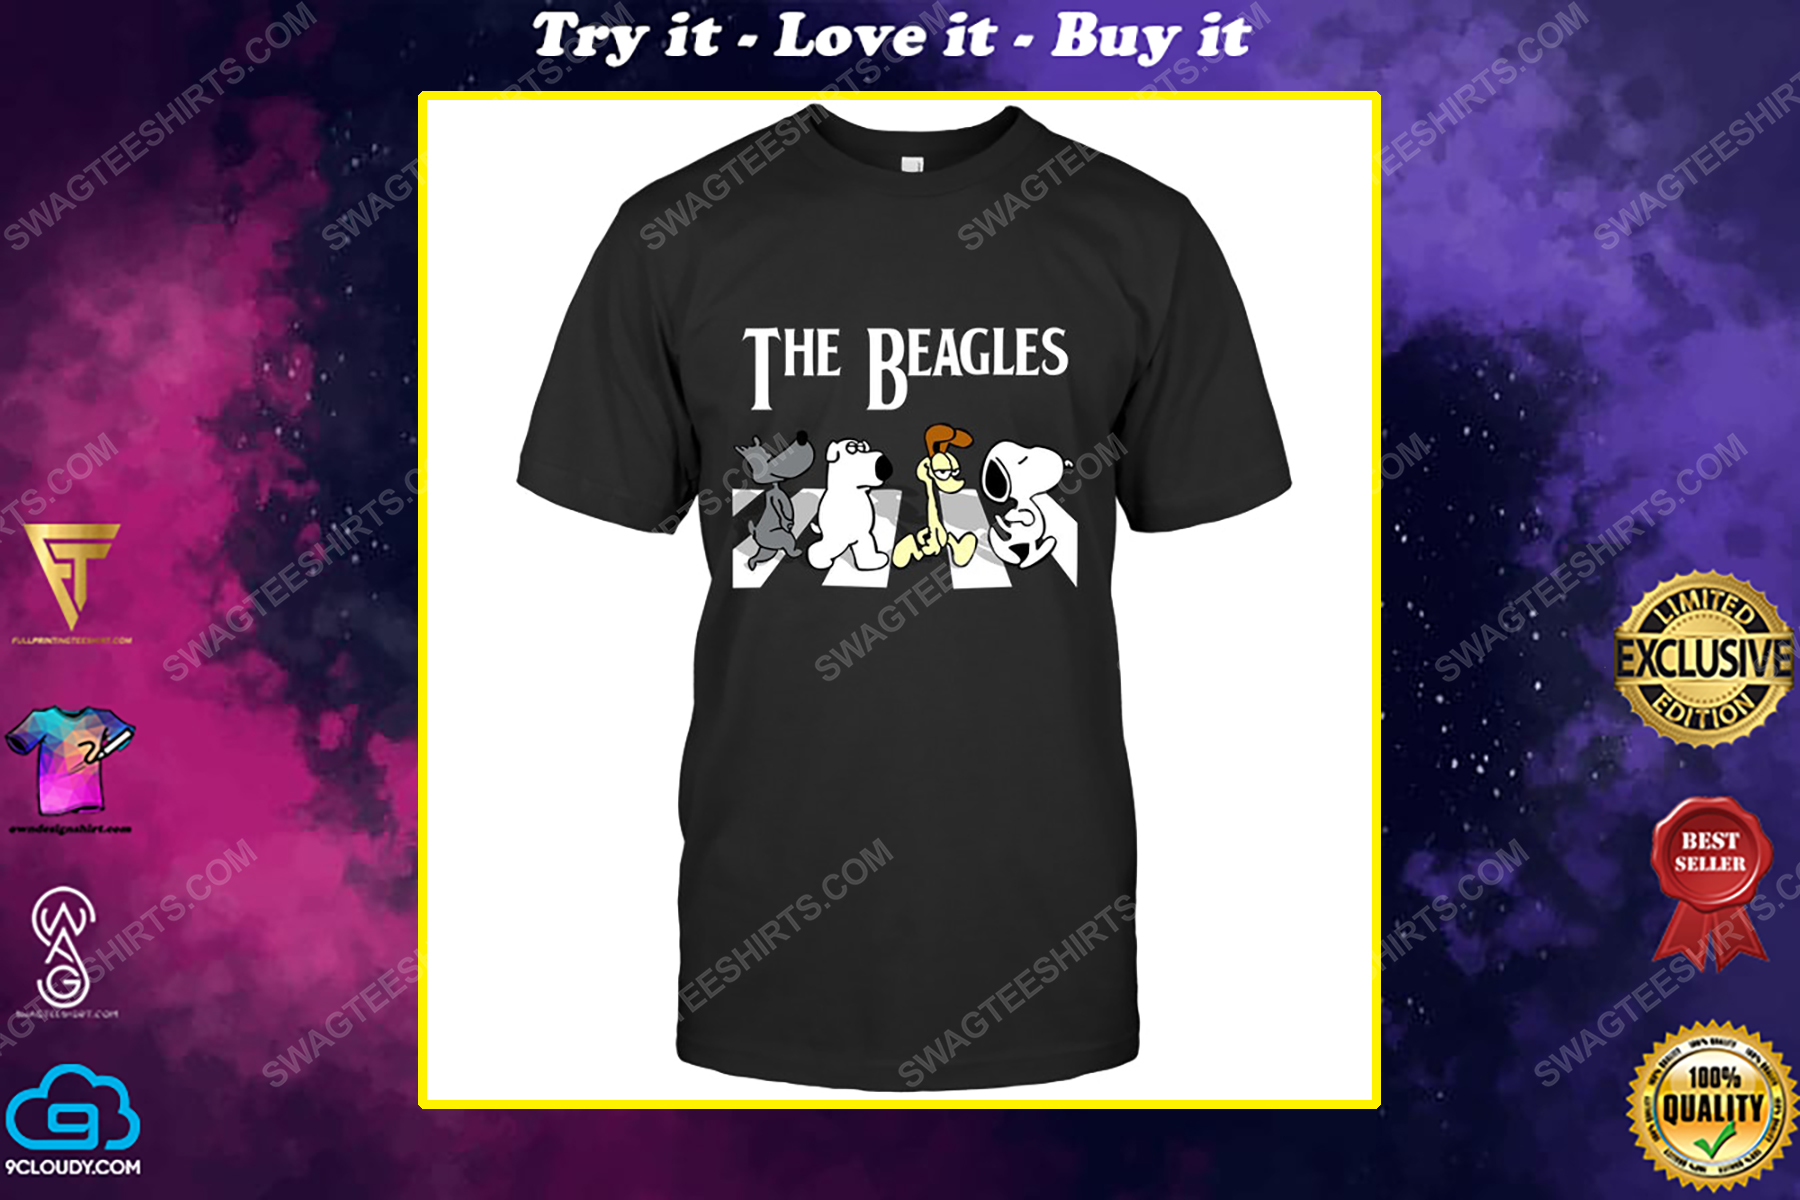 Snoopy and friends the beagles abbey road shirt